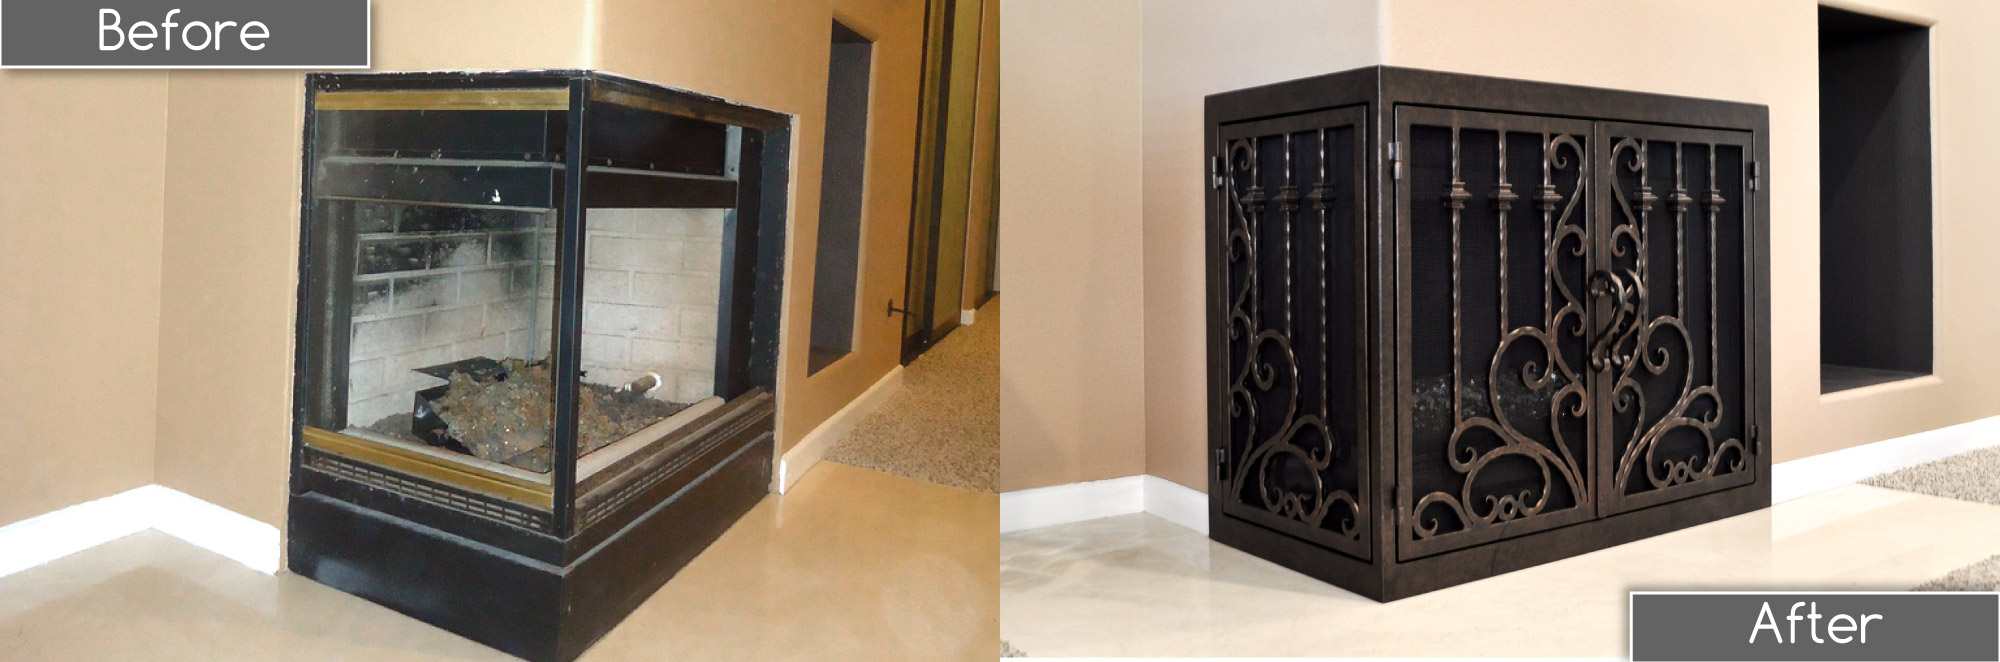 L-Shaped Fireplace Door - Protection 10 Before and After